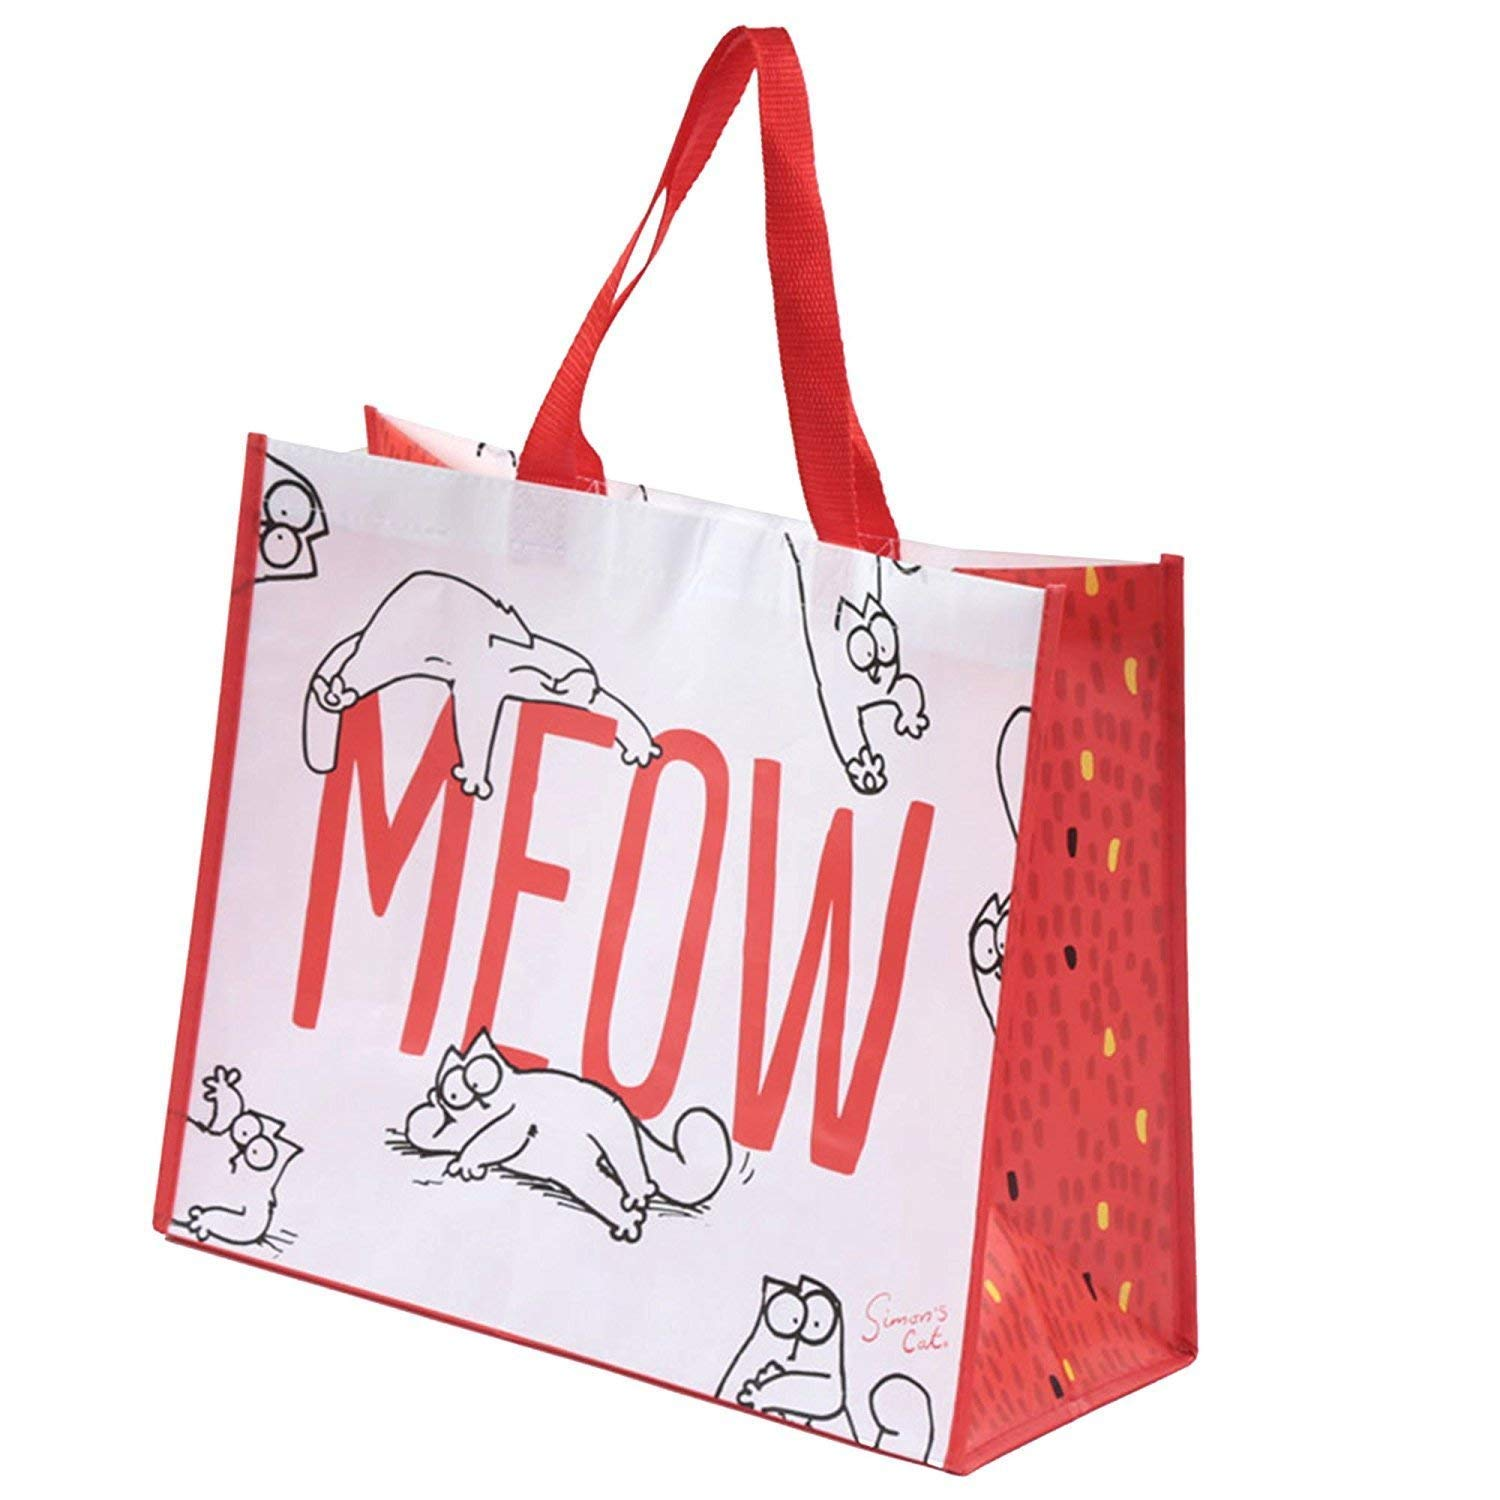 Meow Design Shopping Bag